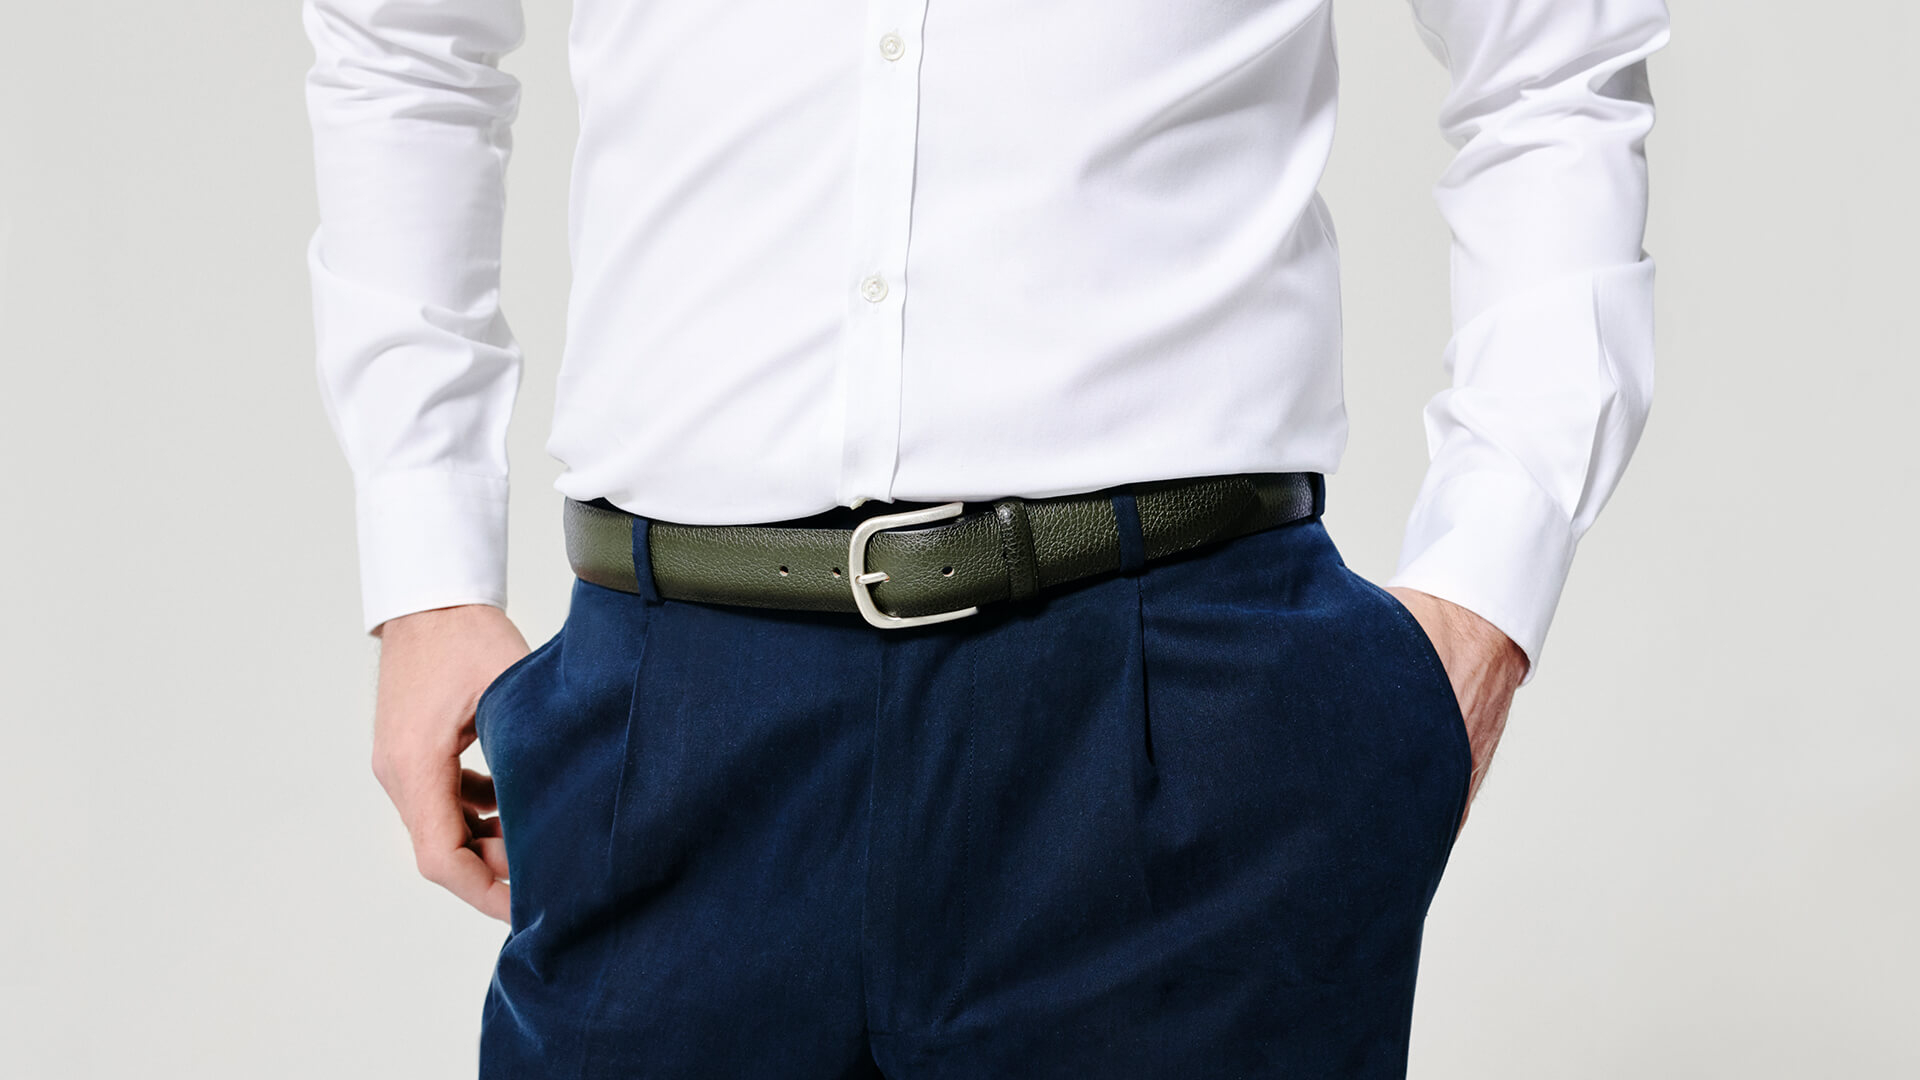 ORCIANI | Man's Belts collection. Leather Belts | Shop online